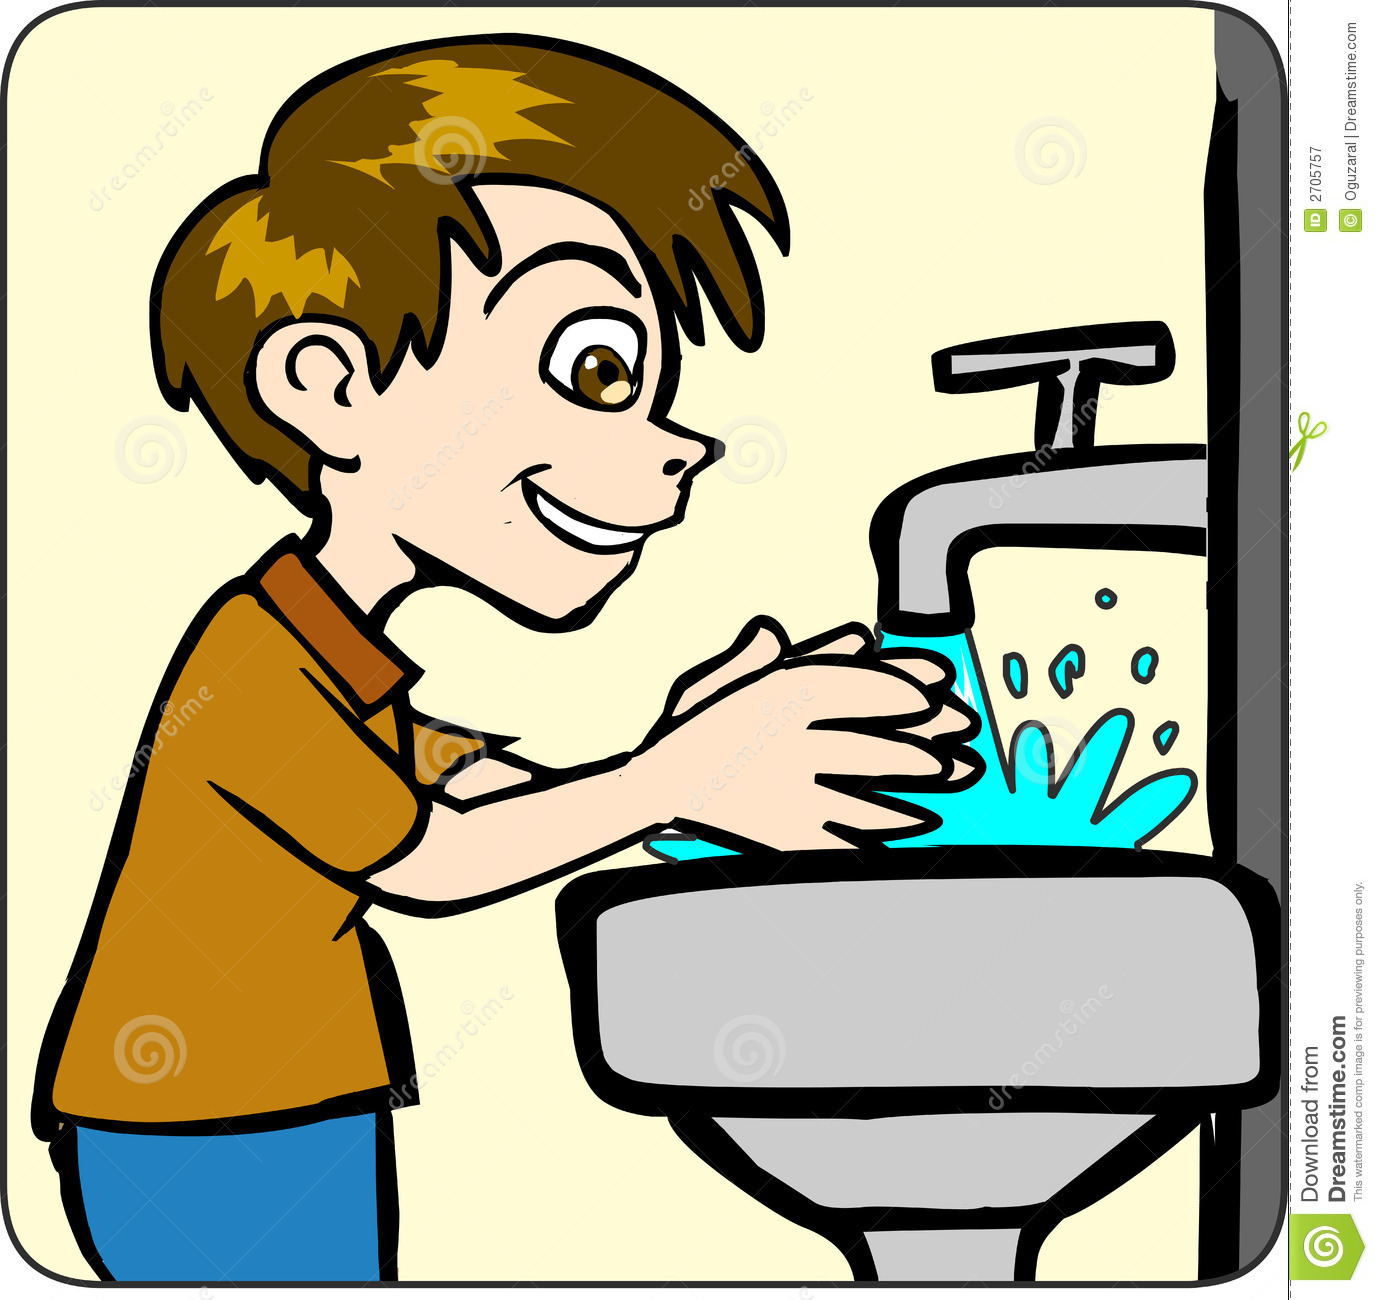 13 Clipart Washing Hands Free Cliparts That You Can Download To You